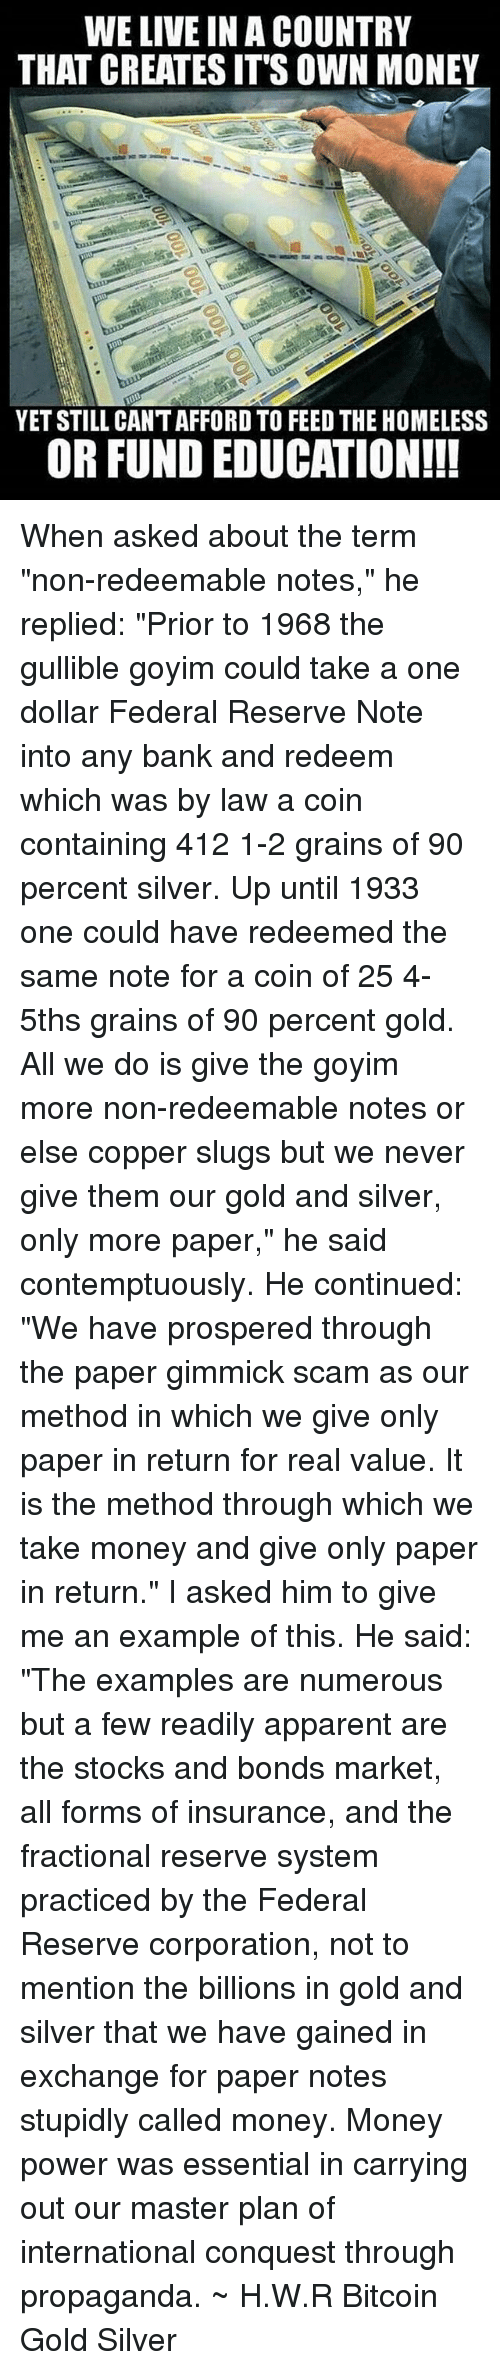 """Goyims: WE LIVE IN A COUNTRY  THAT CREATES IT'S OWN MONEY  YET STILL CANT AFFORD TO FEED THE HOMELESS  OR FUND EDUCATION!!! When asked about the term """"non-redeemable notes,"""" he replied: """"Prior to 1968 the gullible goyim could take a one dollar Federal Reserve Note into any bank and redeem which was by law a coin containing 412 1-2 grains of 90 percent silver. Up until 1933 one could have redeemed the same note for a coin of 25 4-5ths grains of 90 percent gold. All we do is give the goyim more non-redeemable notes or else copper slugs but we never give them our gold and silver, only more paper,"""" he said contemptuously. He continued: """"We have prospered through the paper gimmick scam as our method in which we give only paper in return for real value. It is the method through which we take money and give only paper in return."""" I asked him to give me an example of this. He said: """"The examples are numerous but a few readily apparent are the stocks and bonds market, all forms of insurance, and the fractional reserve system practiced by the Federal Reserve corporation, not to mention the billions in gold and silver that we have gained in exchange for paper notes stupidly called money. Money power was essential in carrying out our master plan of international conquest through propaganda. ~ H.W.R Bitcoin Gold Silver"""